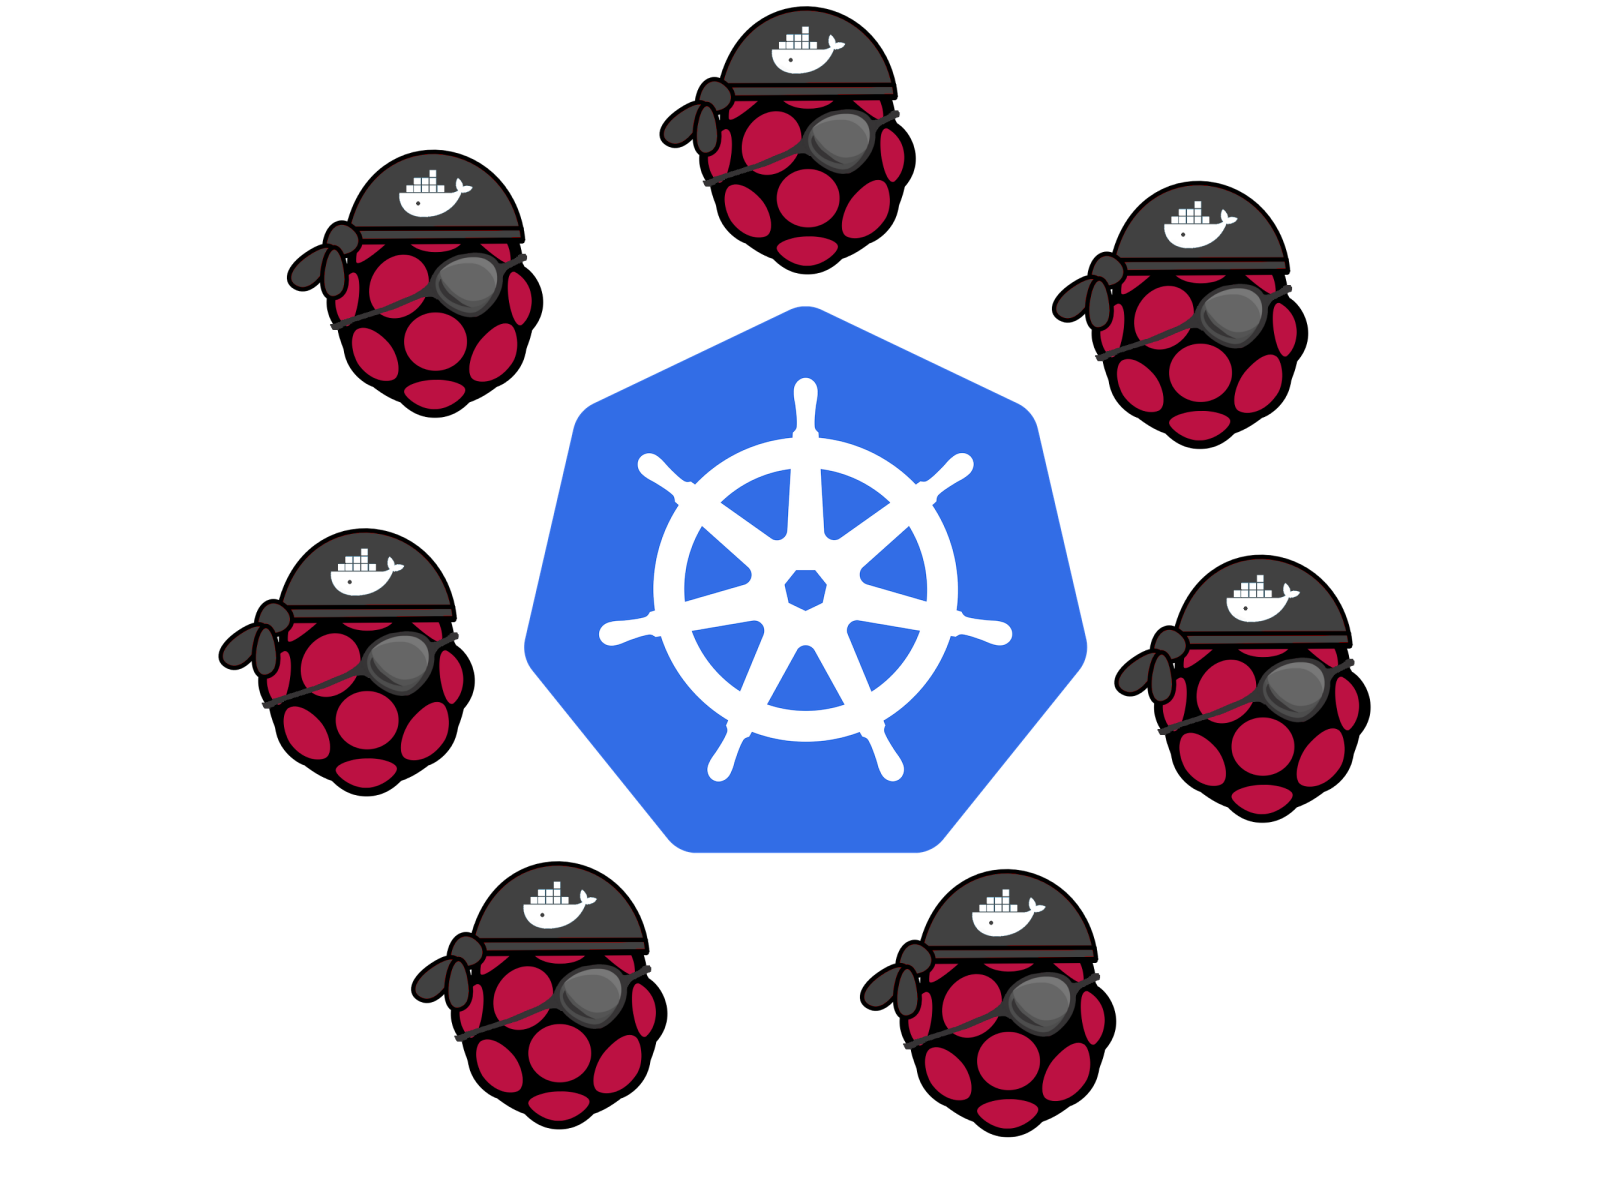 Docker Pirates Armed With Explosive Stuff Raspberry Wiringpi Without Root Swarmclusterha